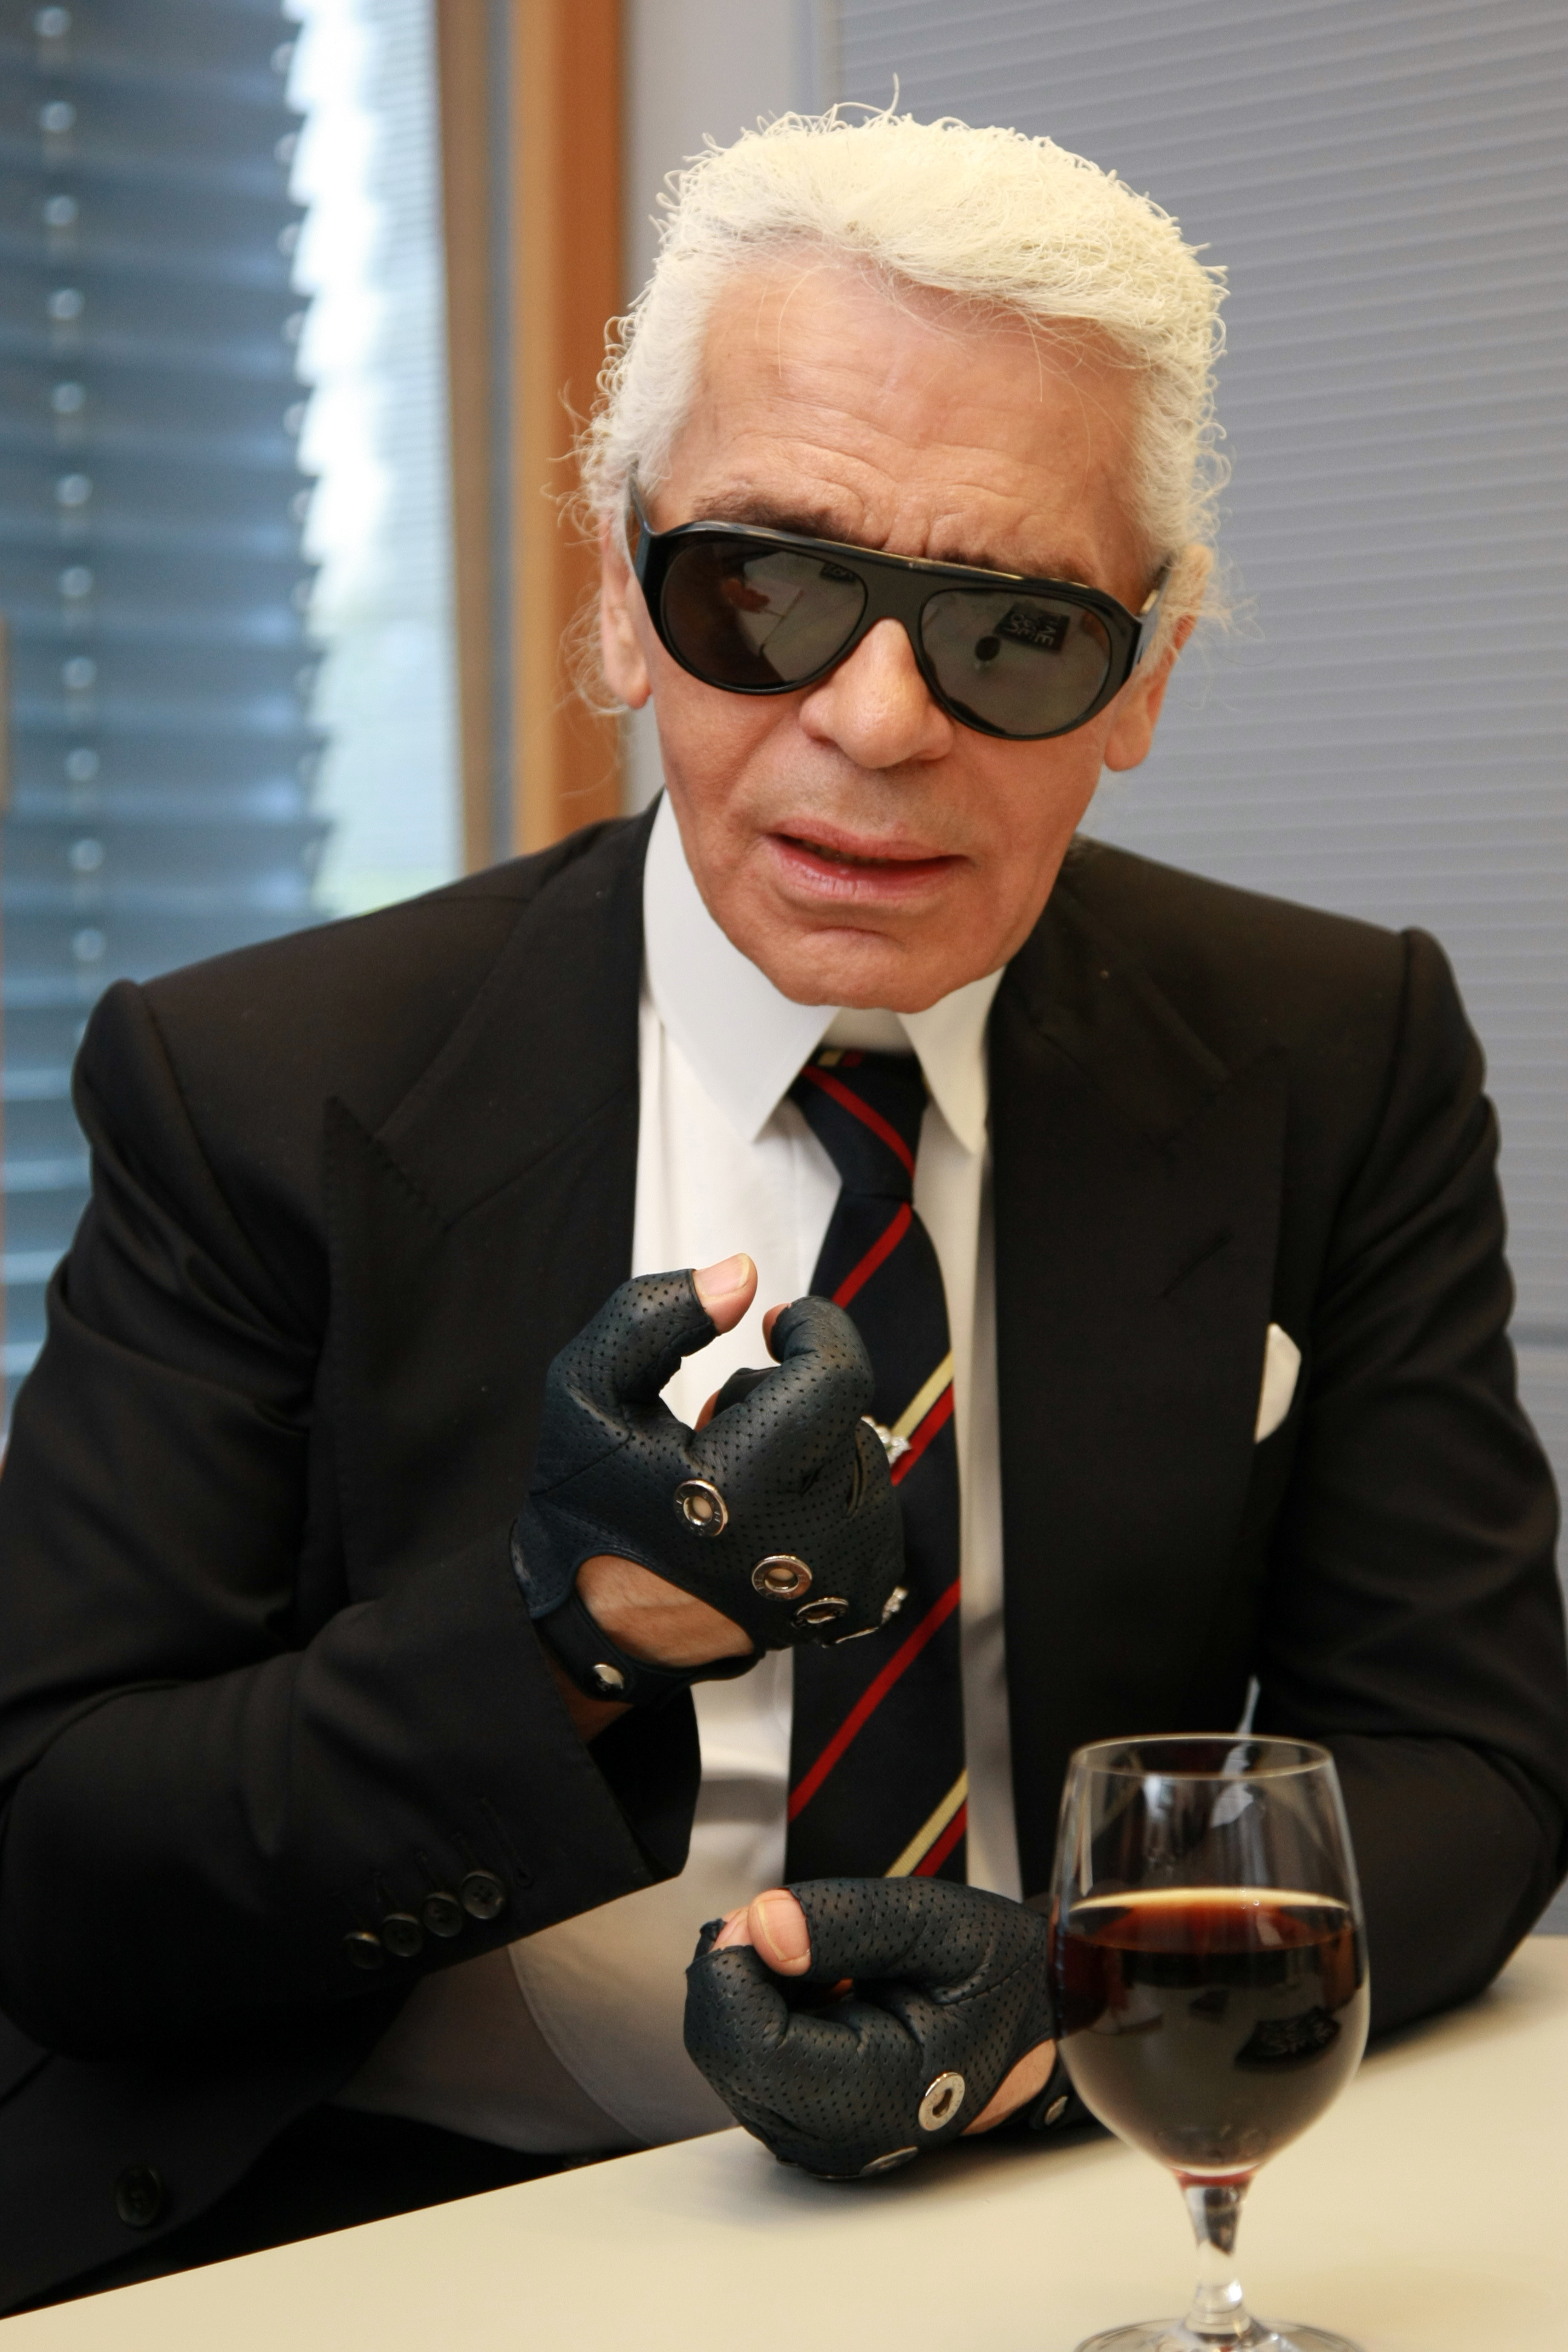 Karl Lagerfeld - Stock Images